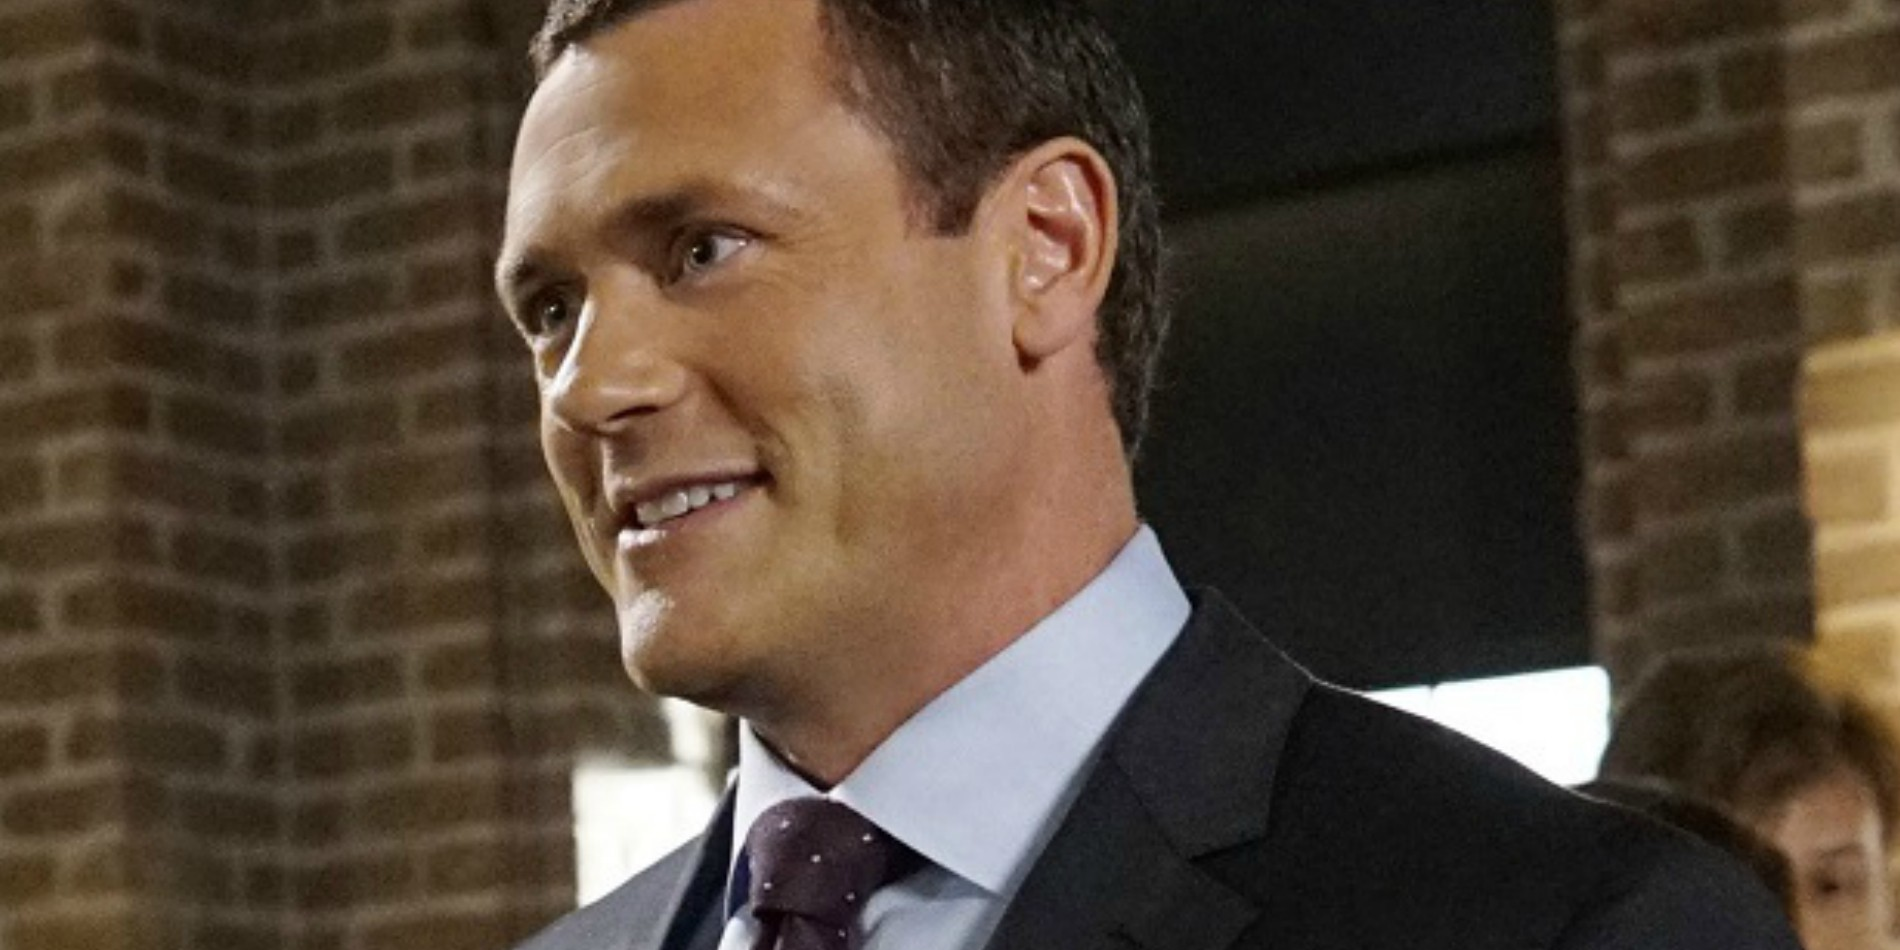 Jason O Mara as Jeffrey Mace in Agents of Shield